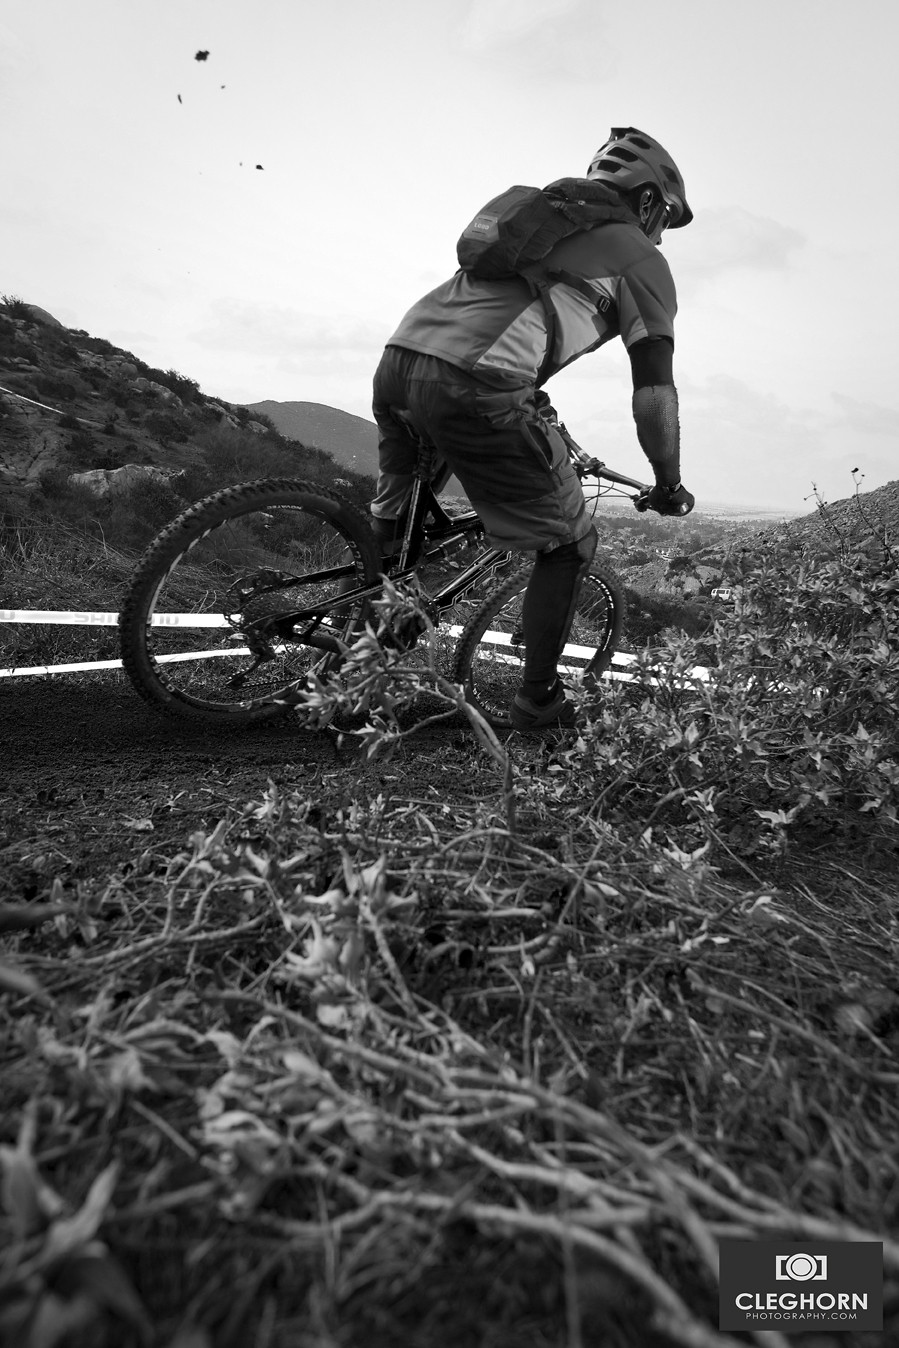 Backing it in - Cleghorn Photography - Mountain Biking Pictures - Vital MTB